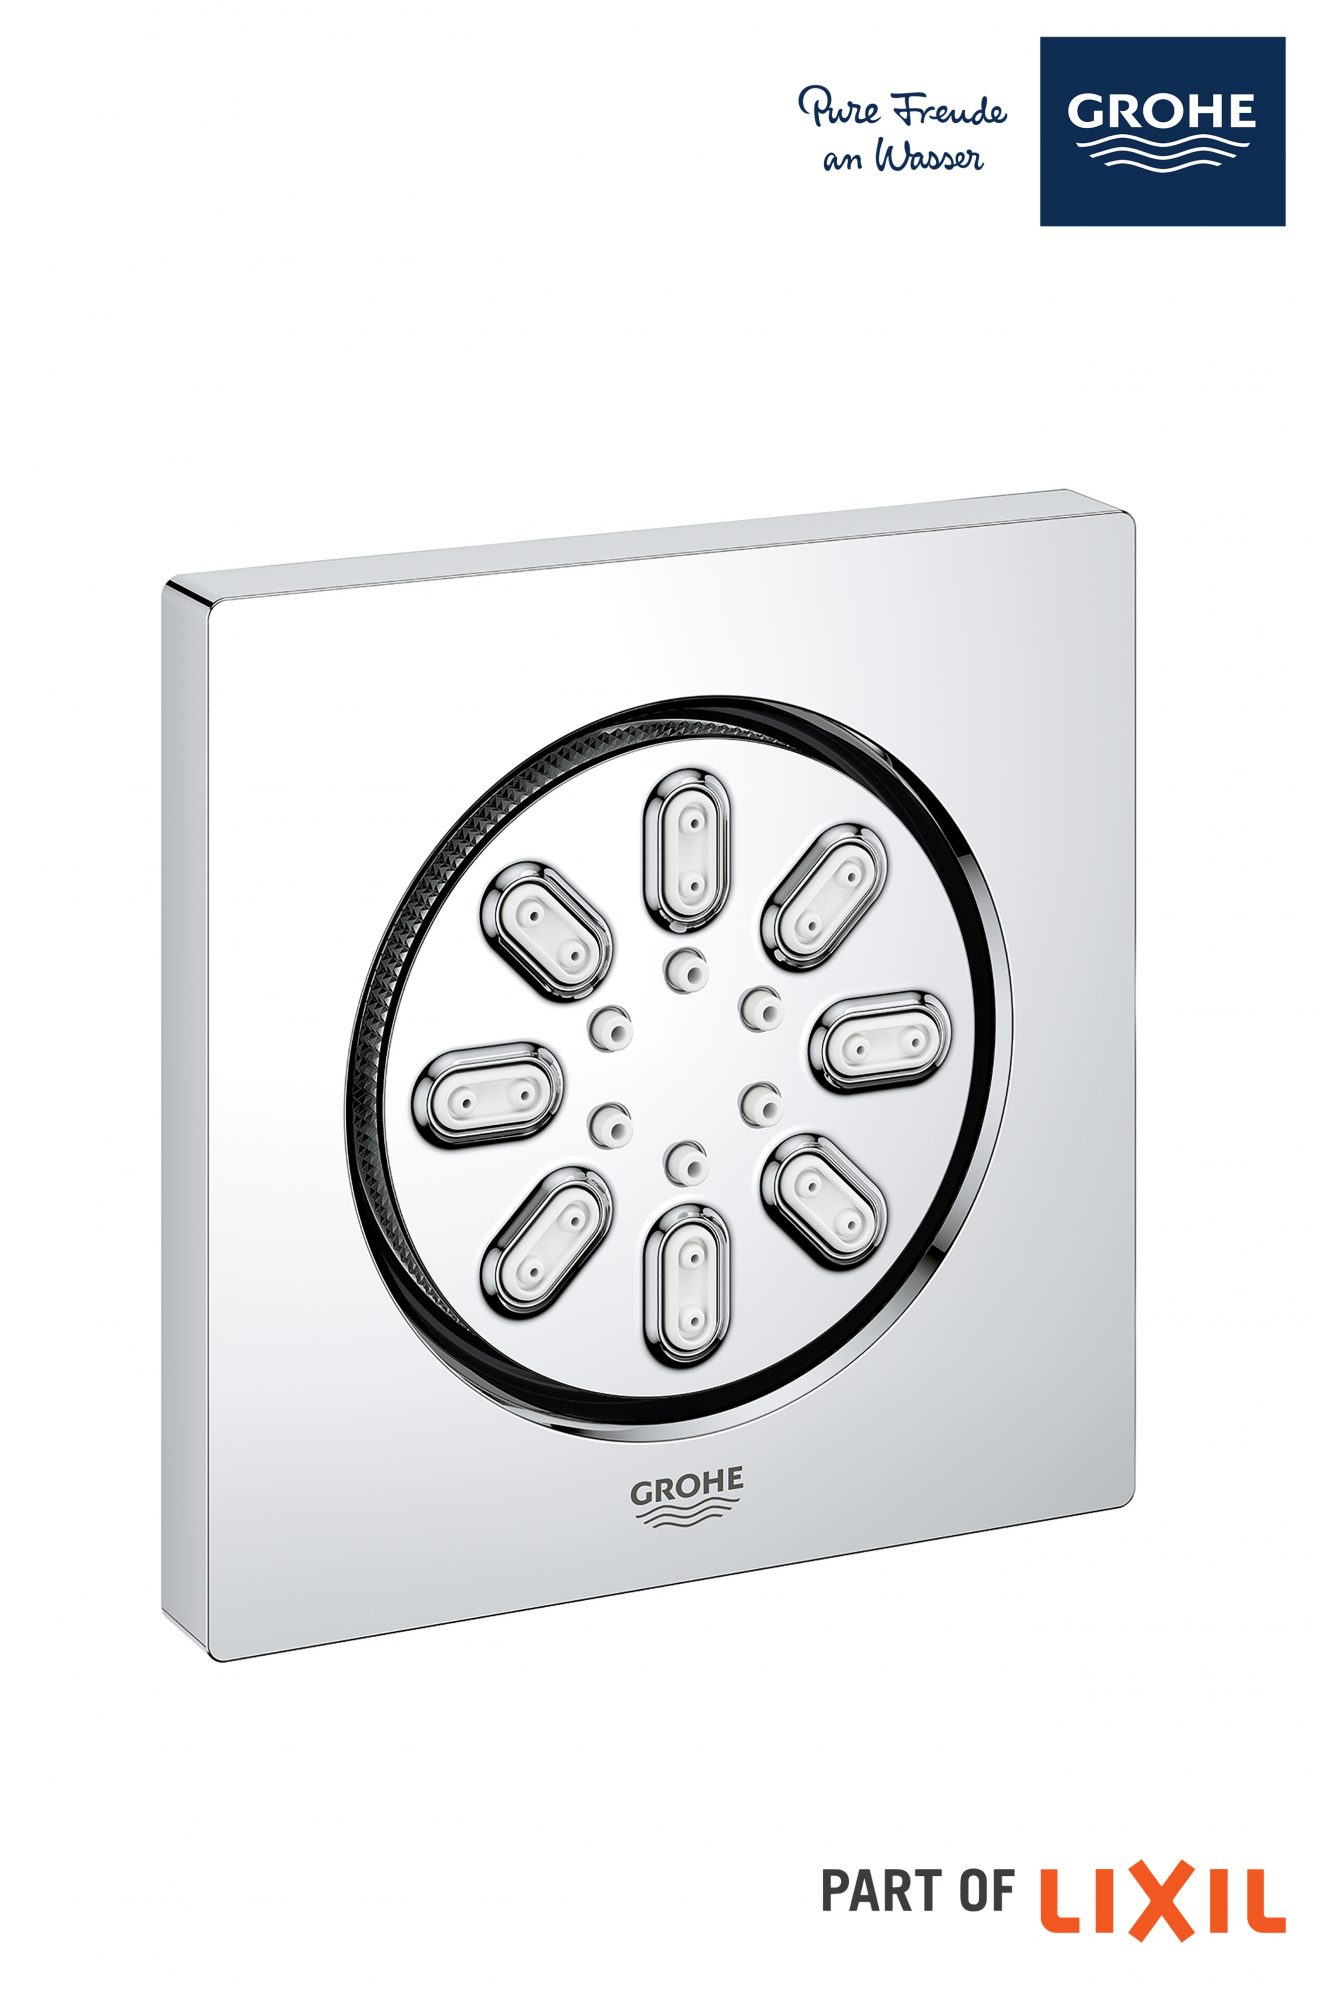 GROHE Together Brings the Essential Elements of Great Shower